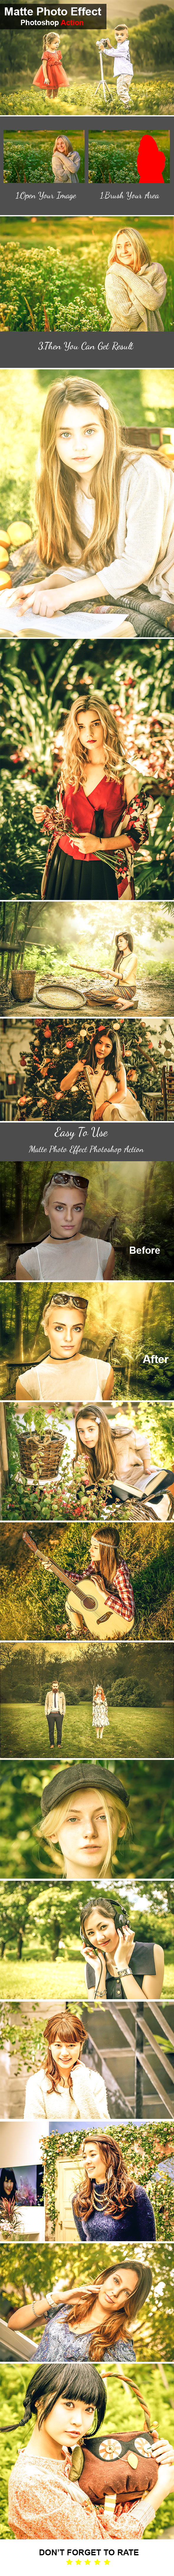 Matte Photo Effect Photoshop Action - Photo Effects Actions